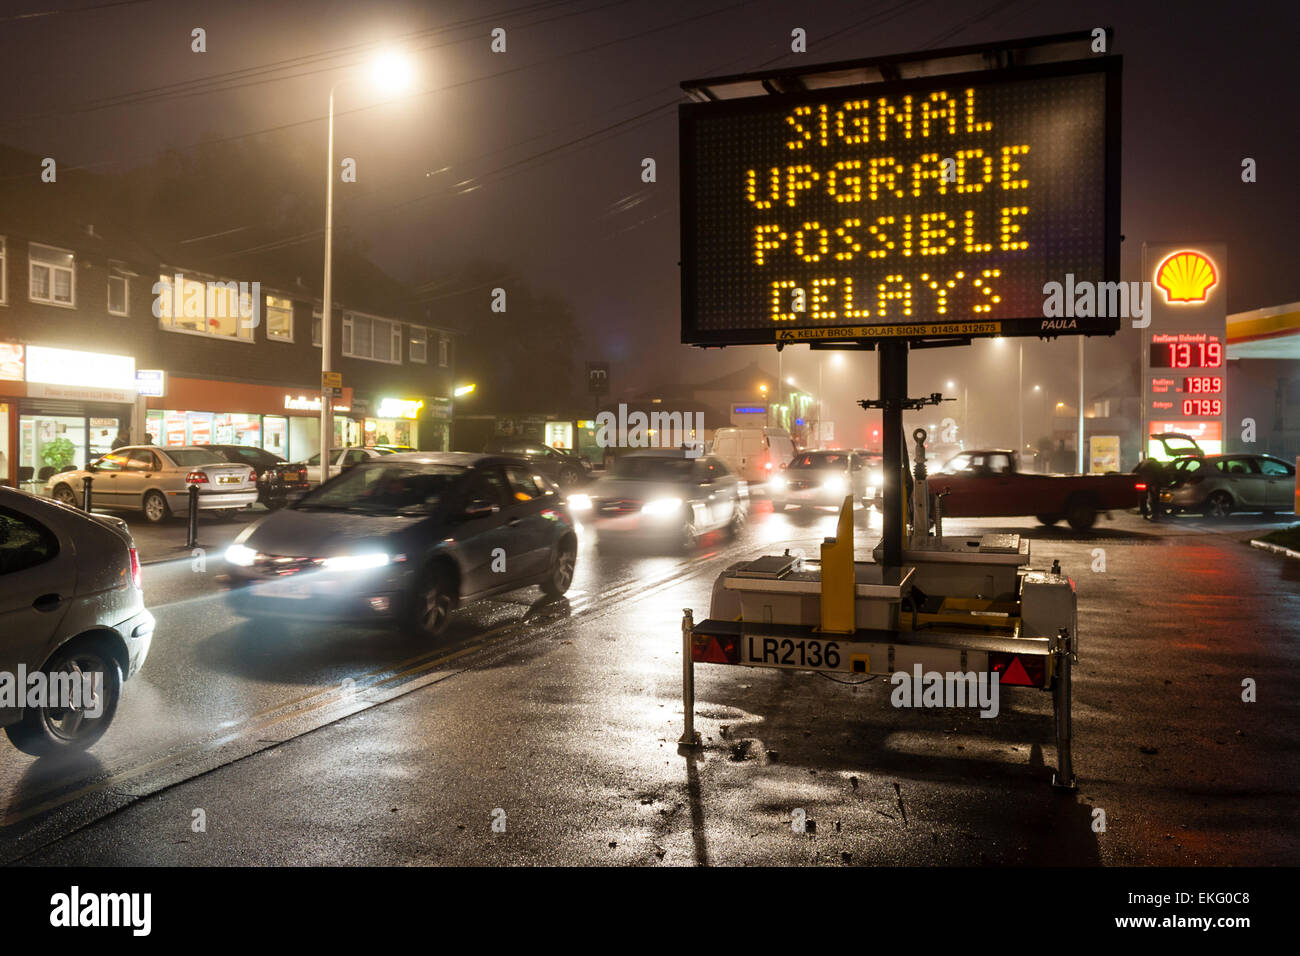 Sign warning of traffic delays at night - Stock Image